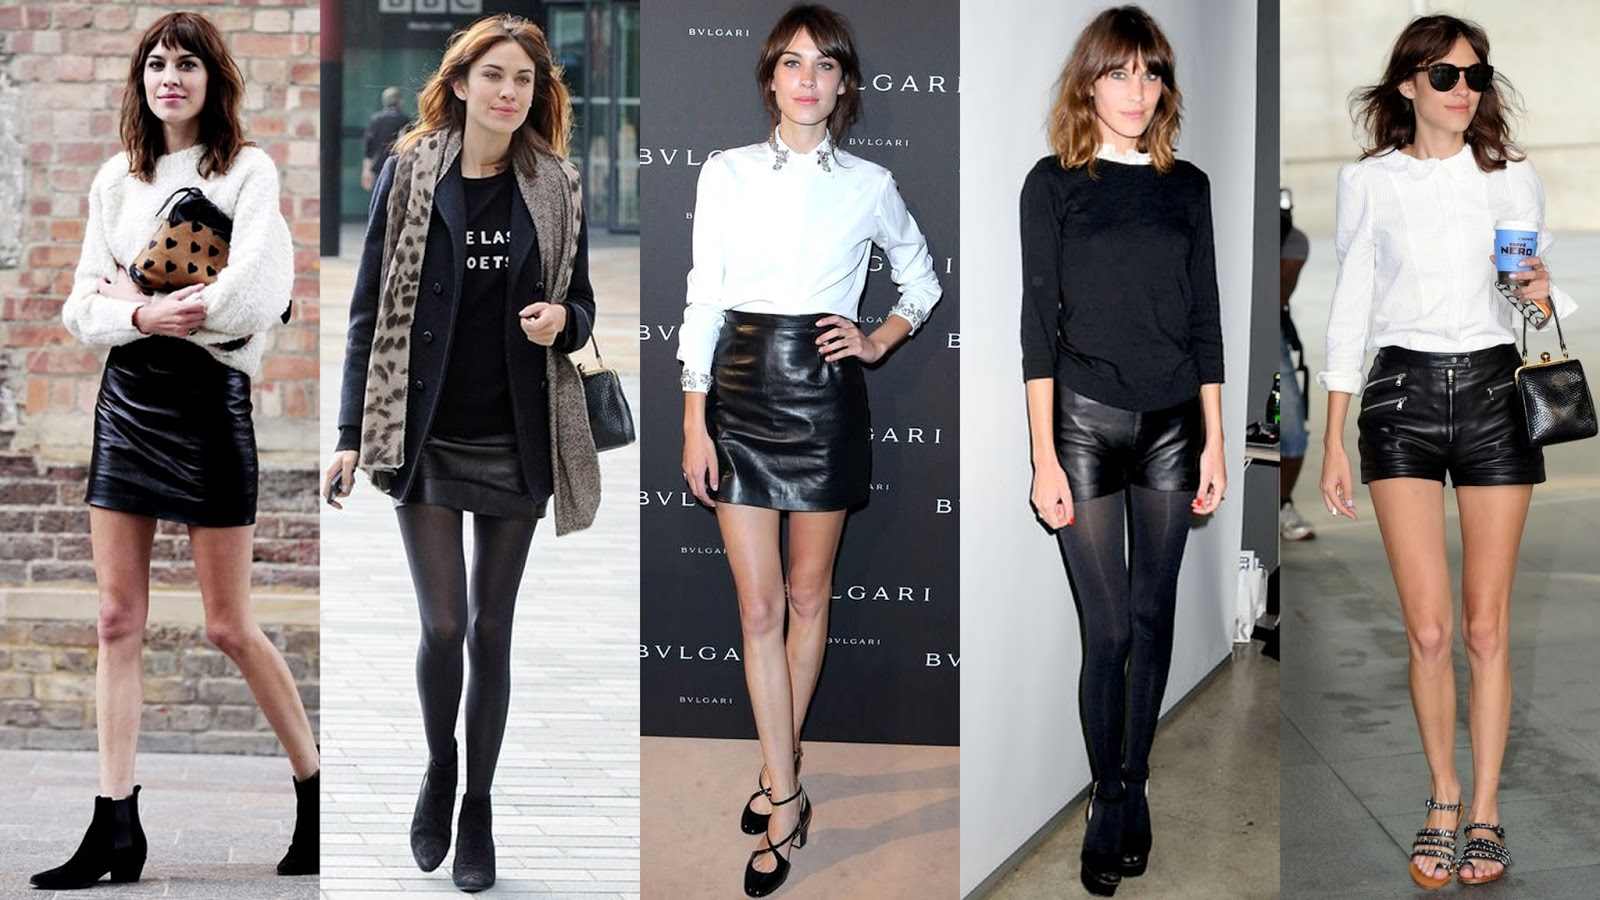 Adding to her edgy androgynous style is sleek black leather, in the ...